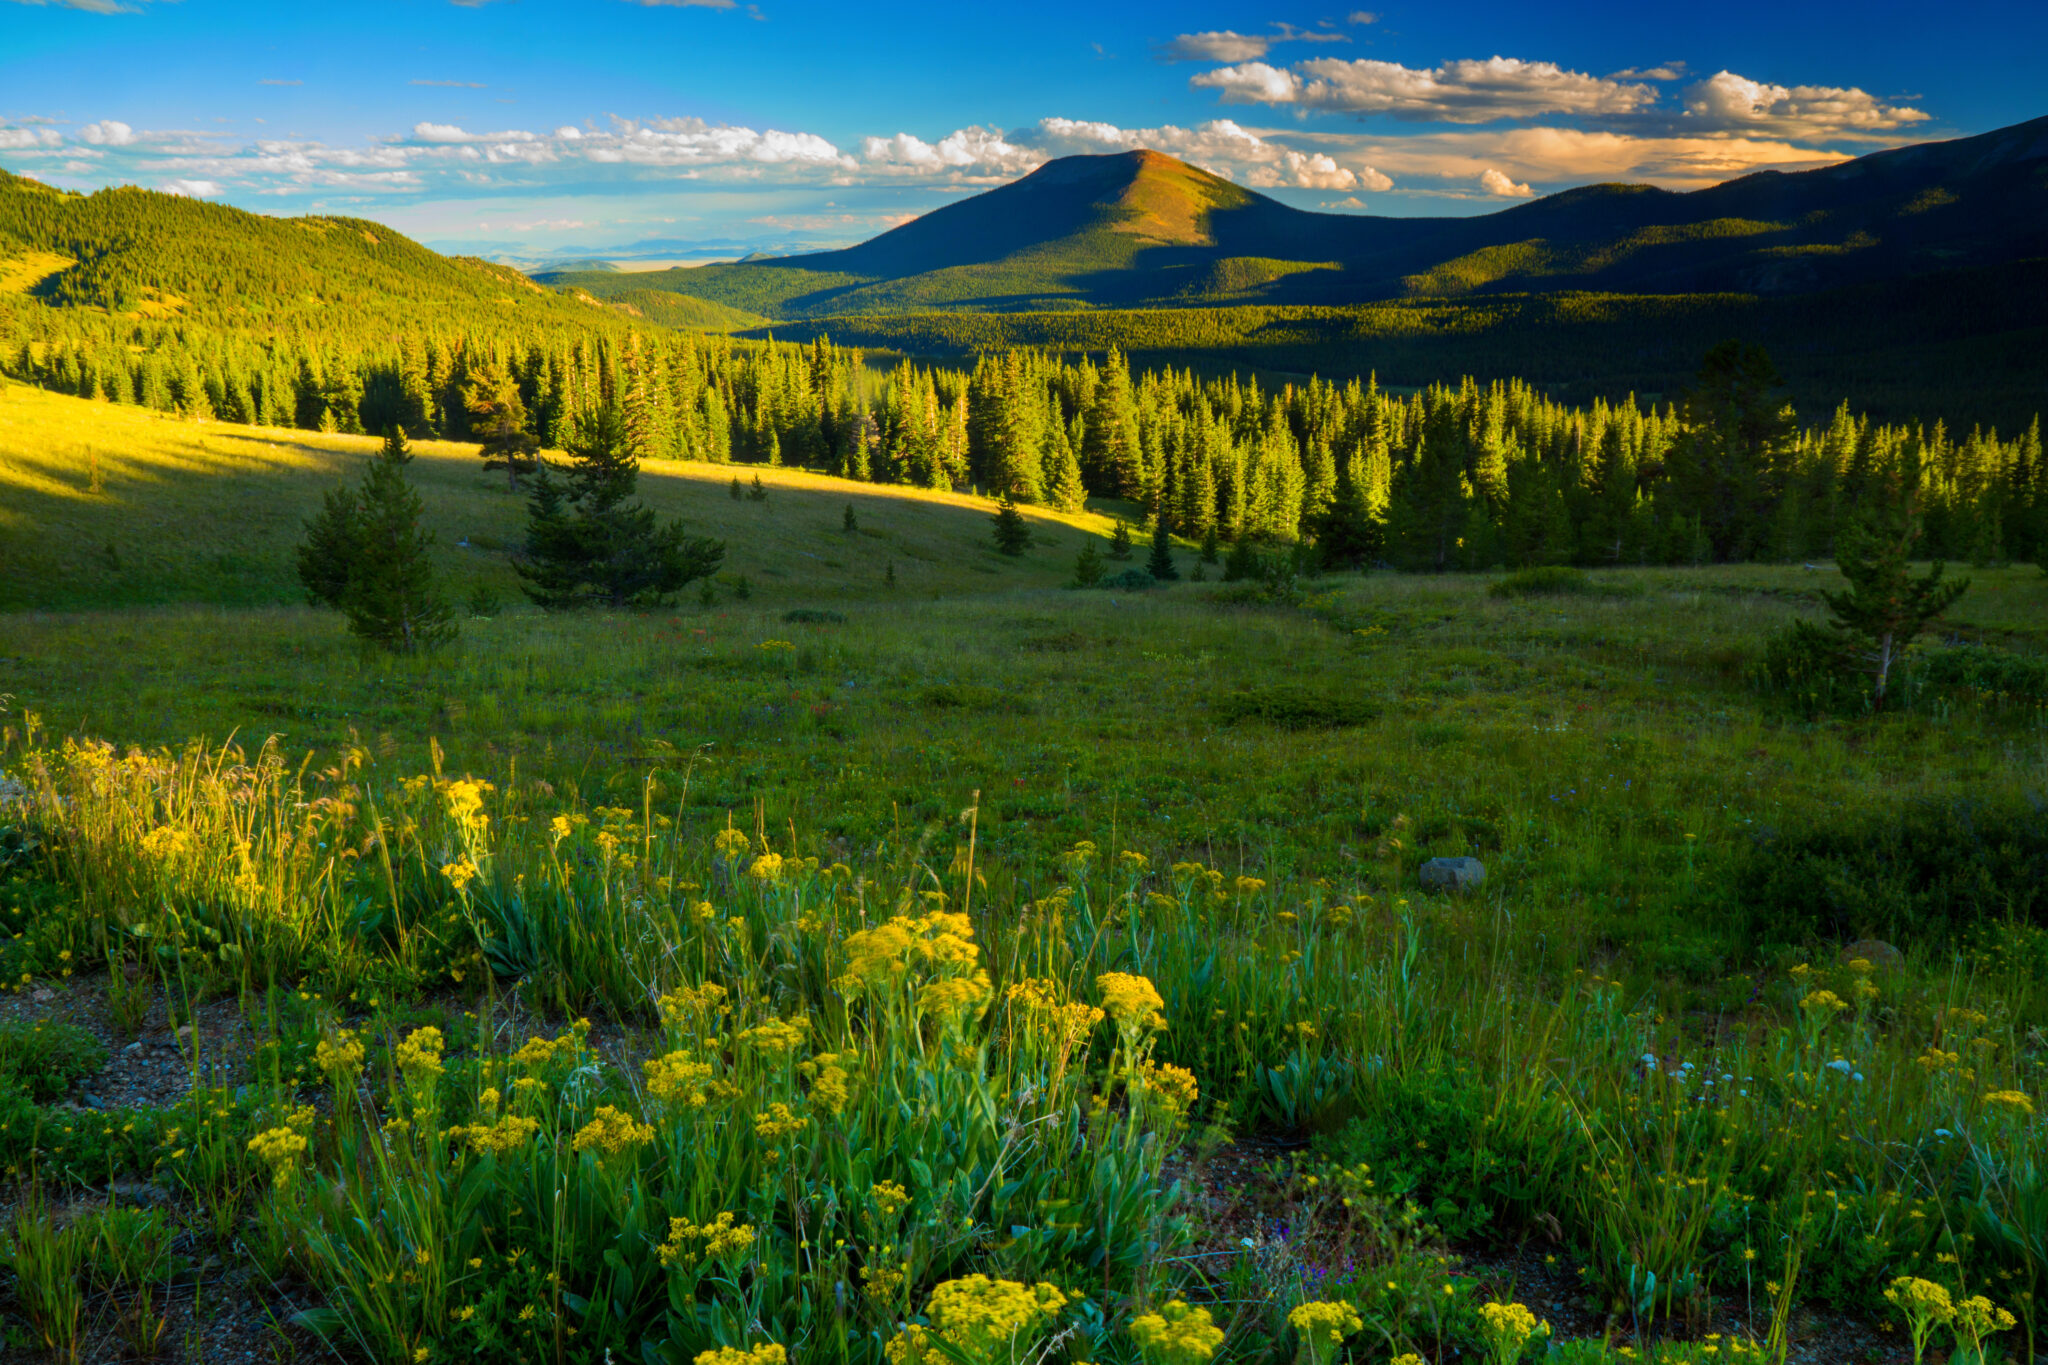 Boreas Pass outside of Breckenridge, Colorado shows off its beautiful summer wildflowers in the evening light beneath the Rocky Mountains